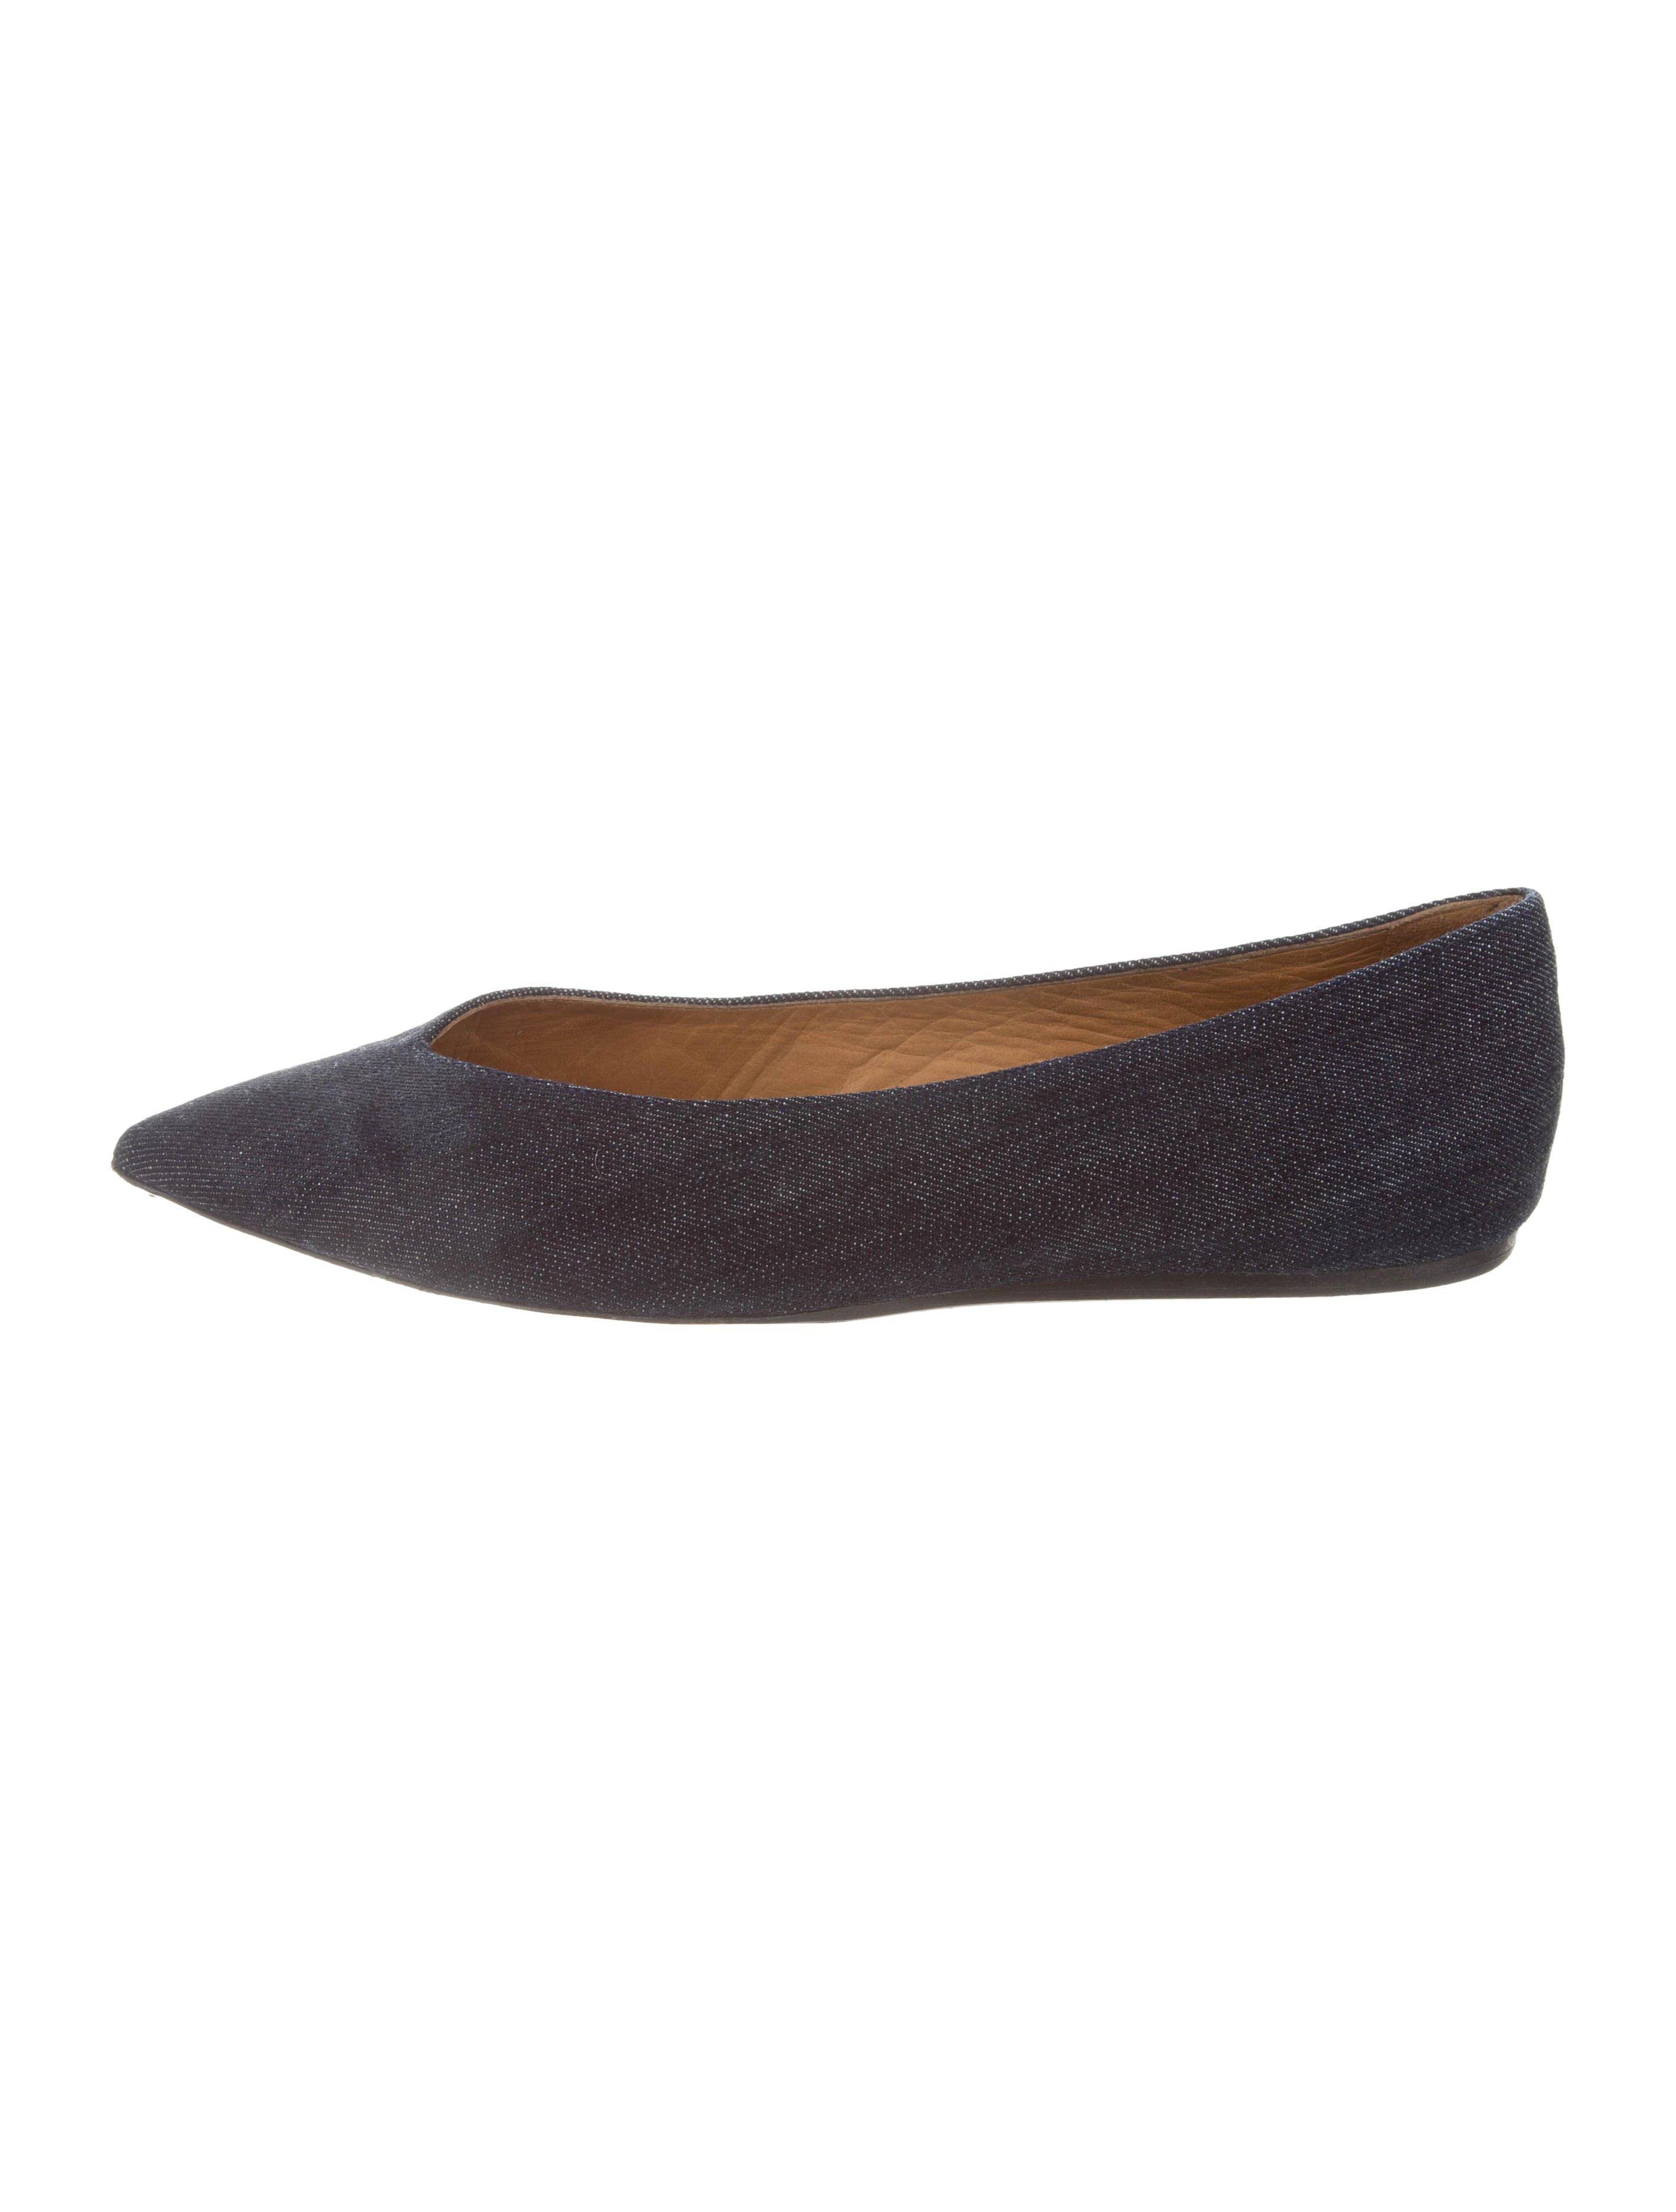 Isabel Marant Pointed-Toe Suede Flats cheap browse cheap sale recommend clearance new top quality for sale uVIZQ1MOq